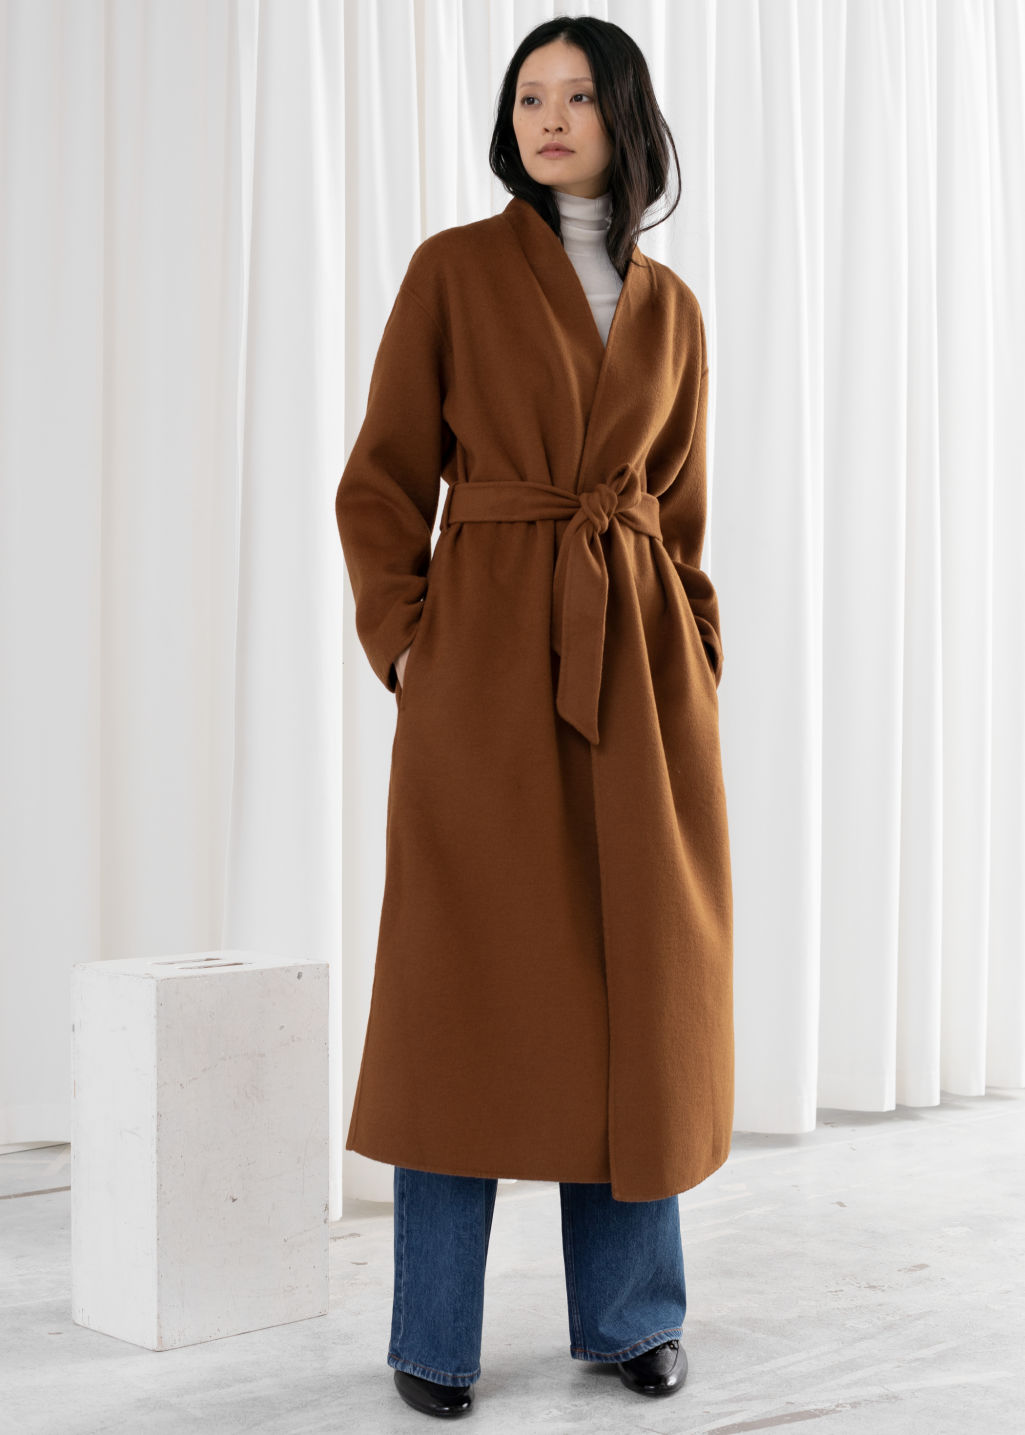 separation shoes 72dba a65fa Belted Wool Blend Coat - Camel - Woolcoats - & Other Stories